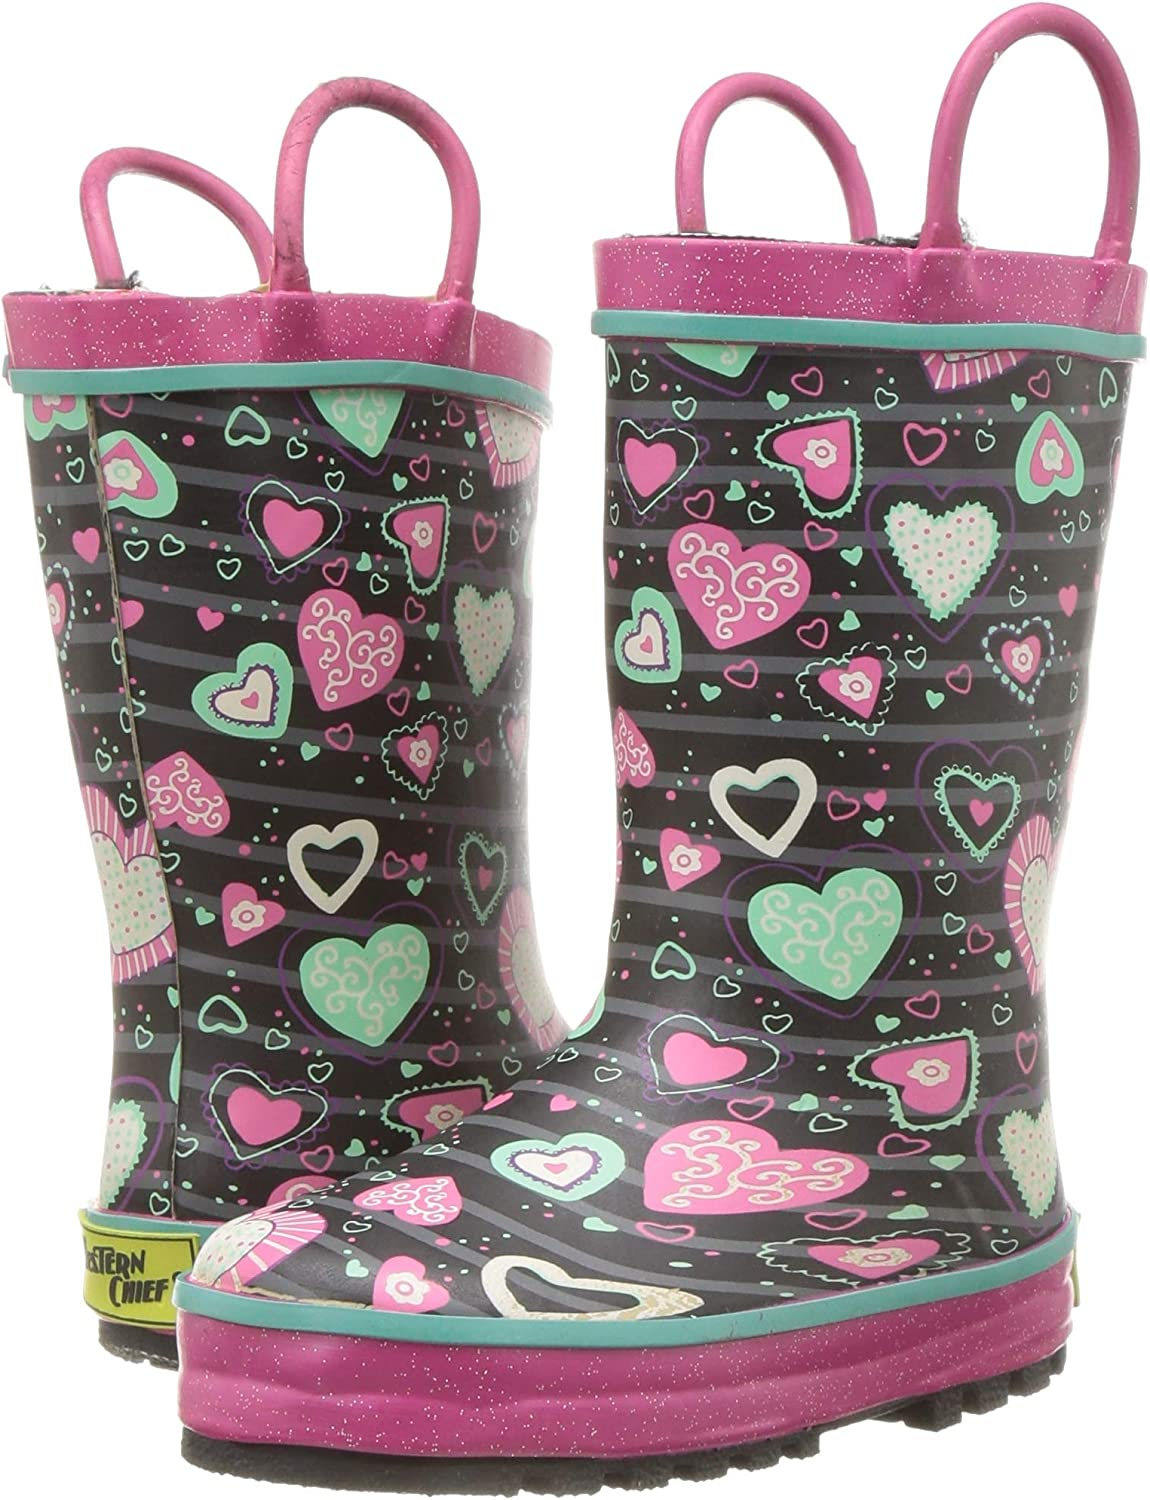 Rain Boots Clothing, Shoes & Jewelry Western Chief Kids